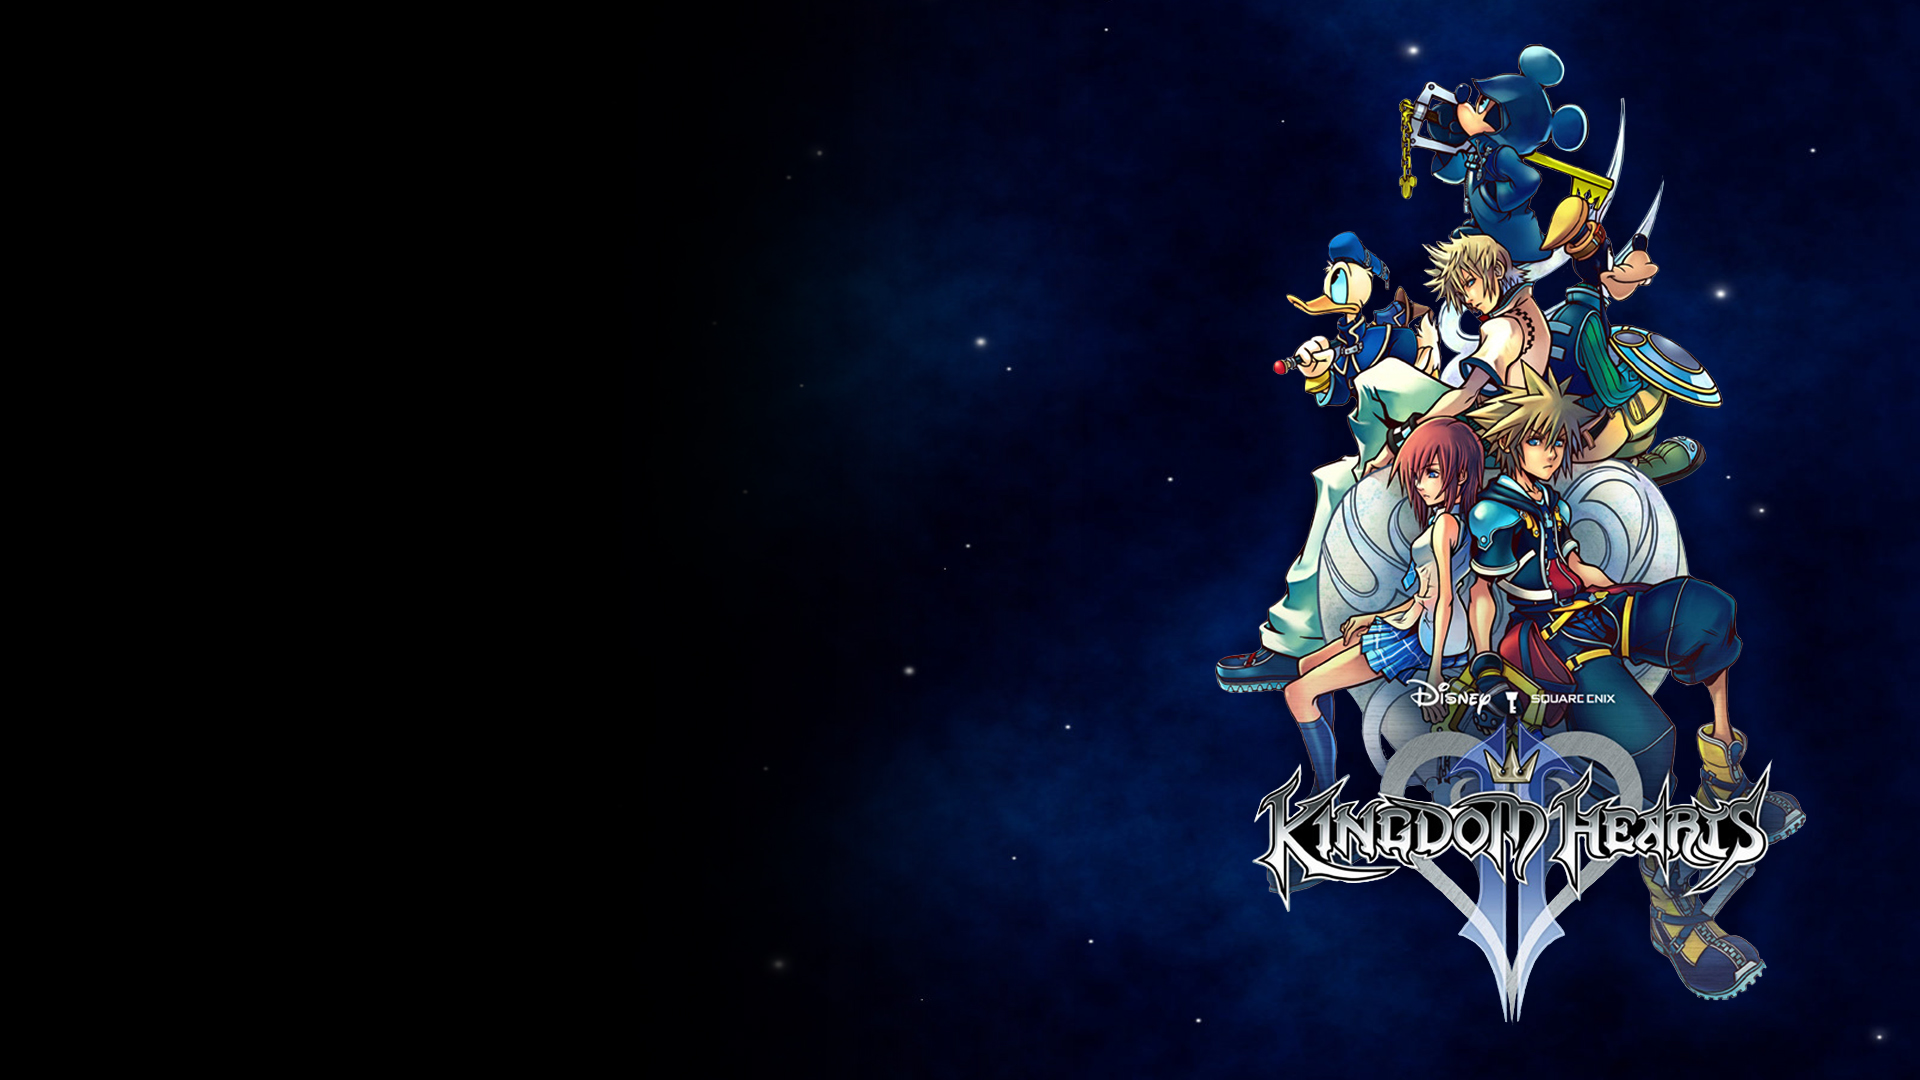 Kingdom Hearts HD wallpaper 1920x1080 52461 1920x1080